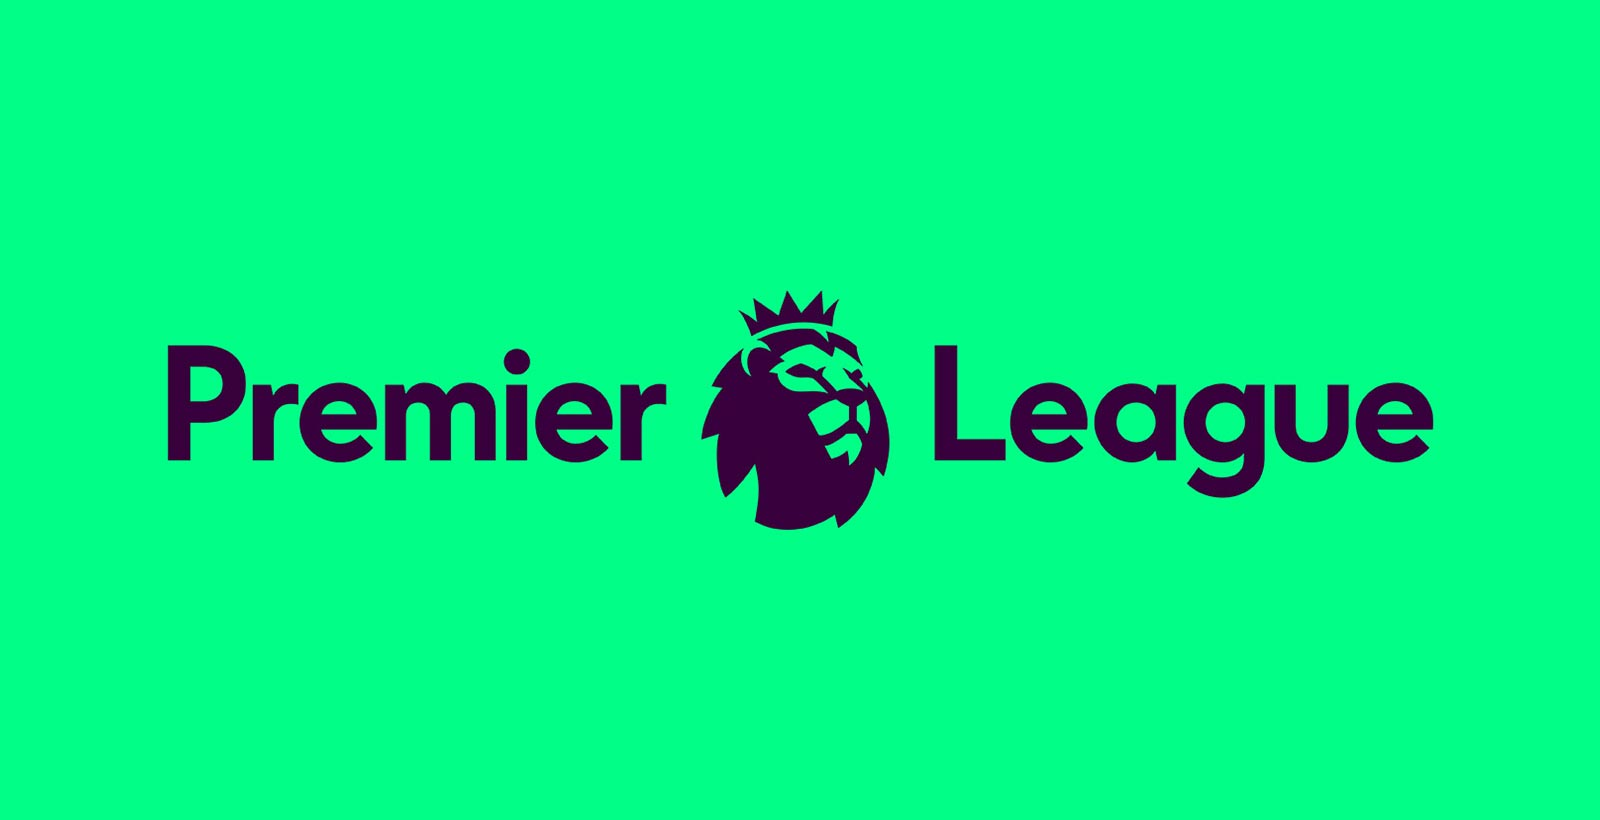 the premier league